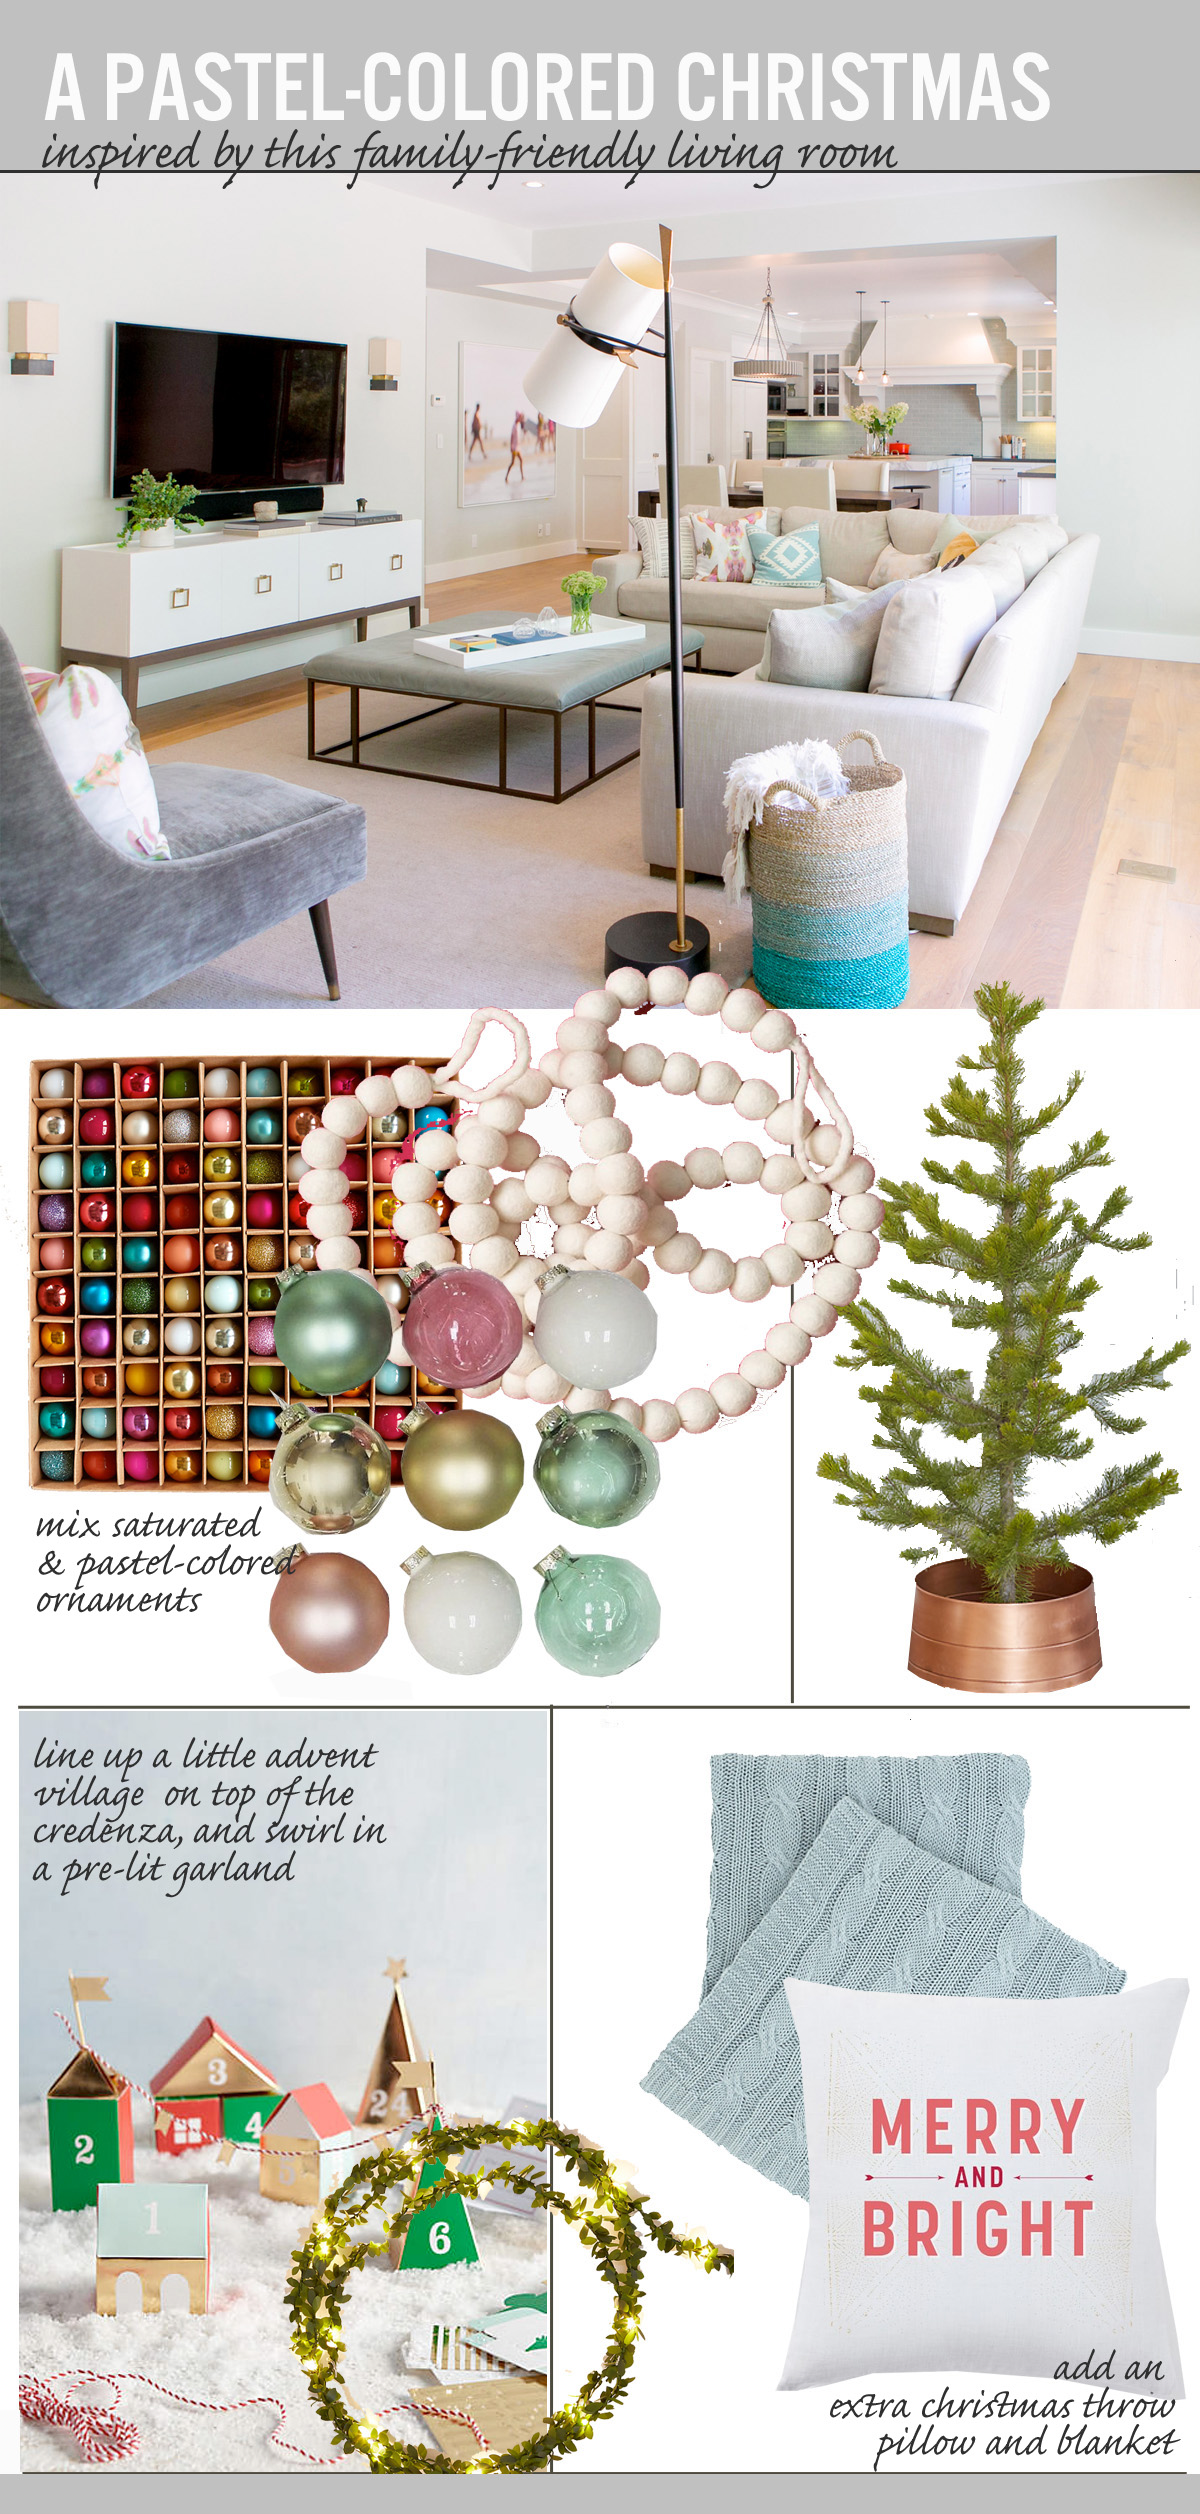 A Pastel-Colored Christmas | The Anatomy of Design